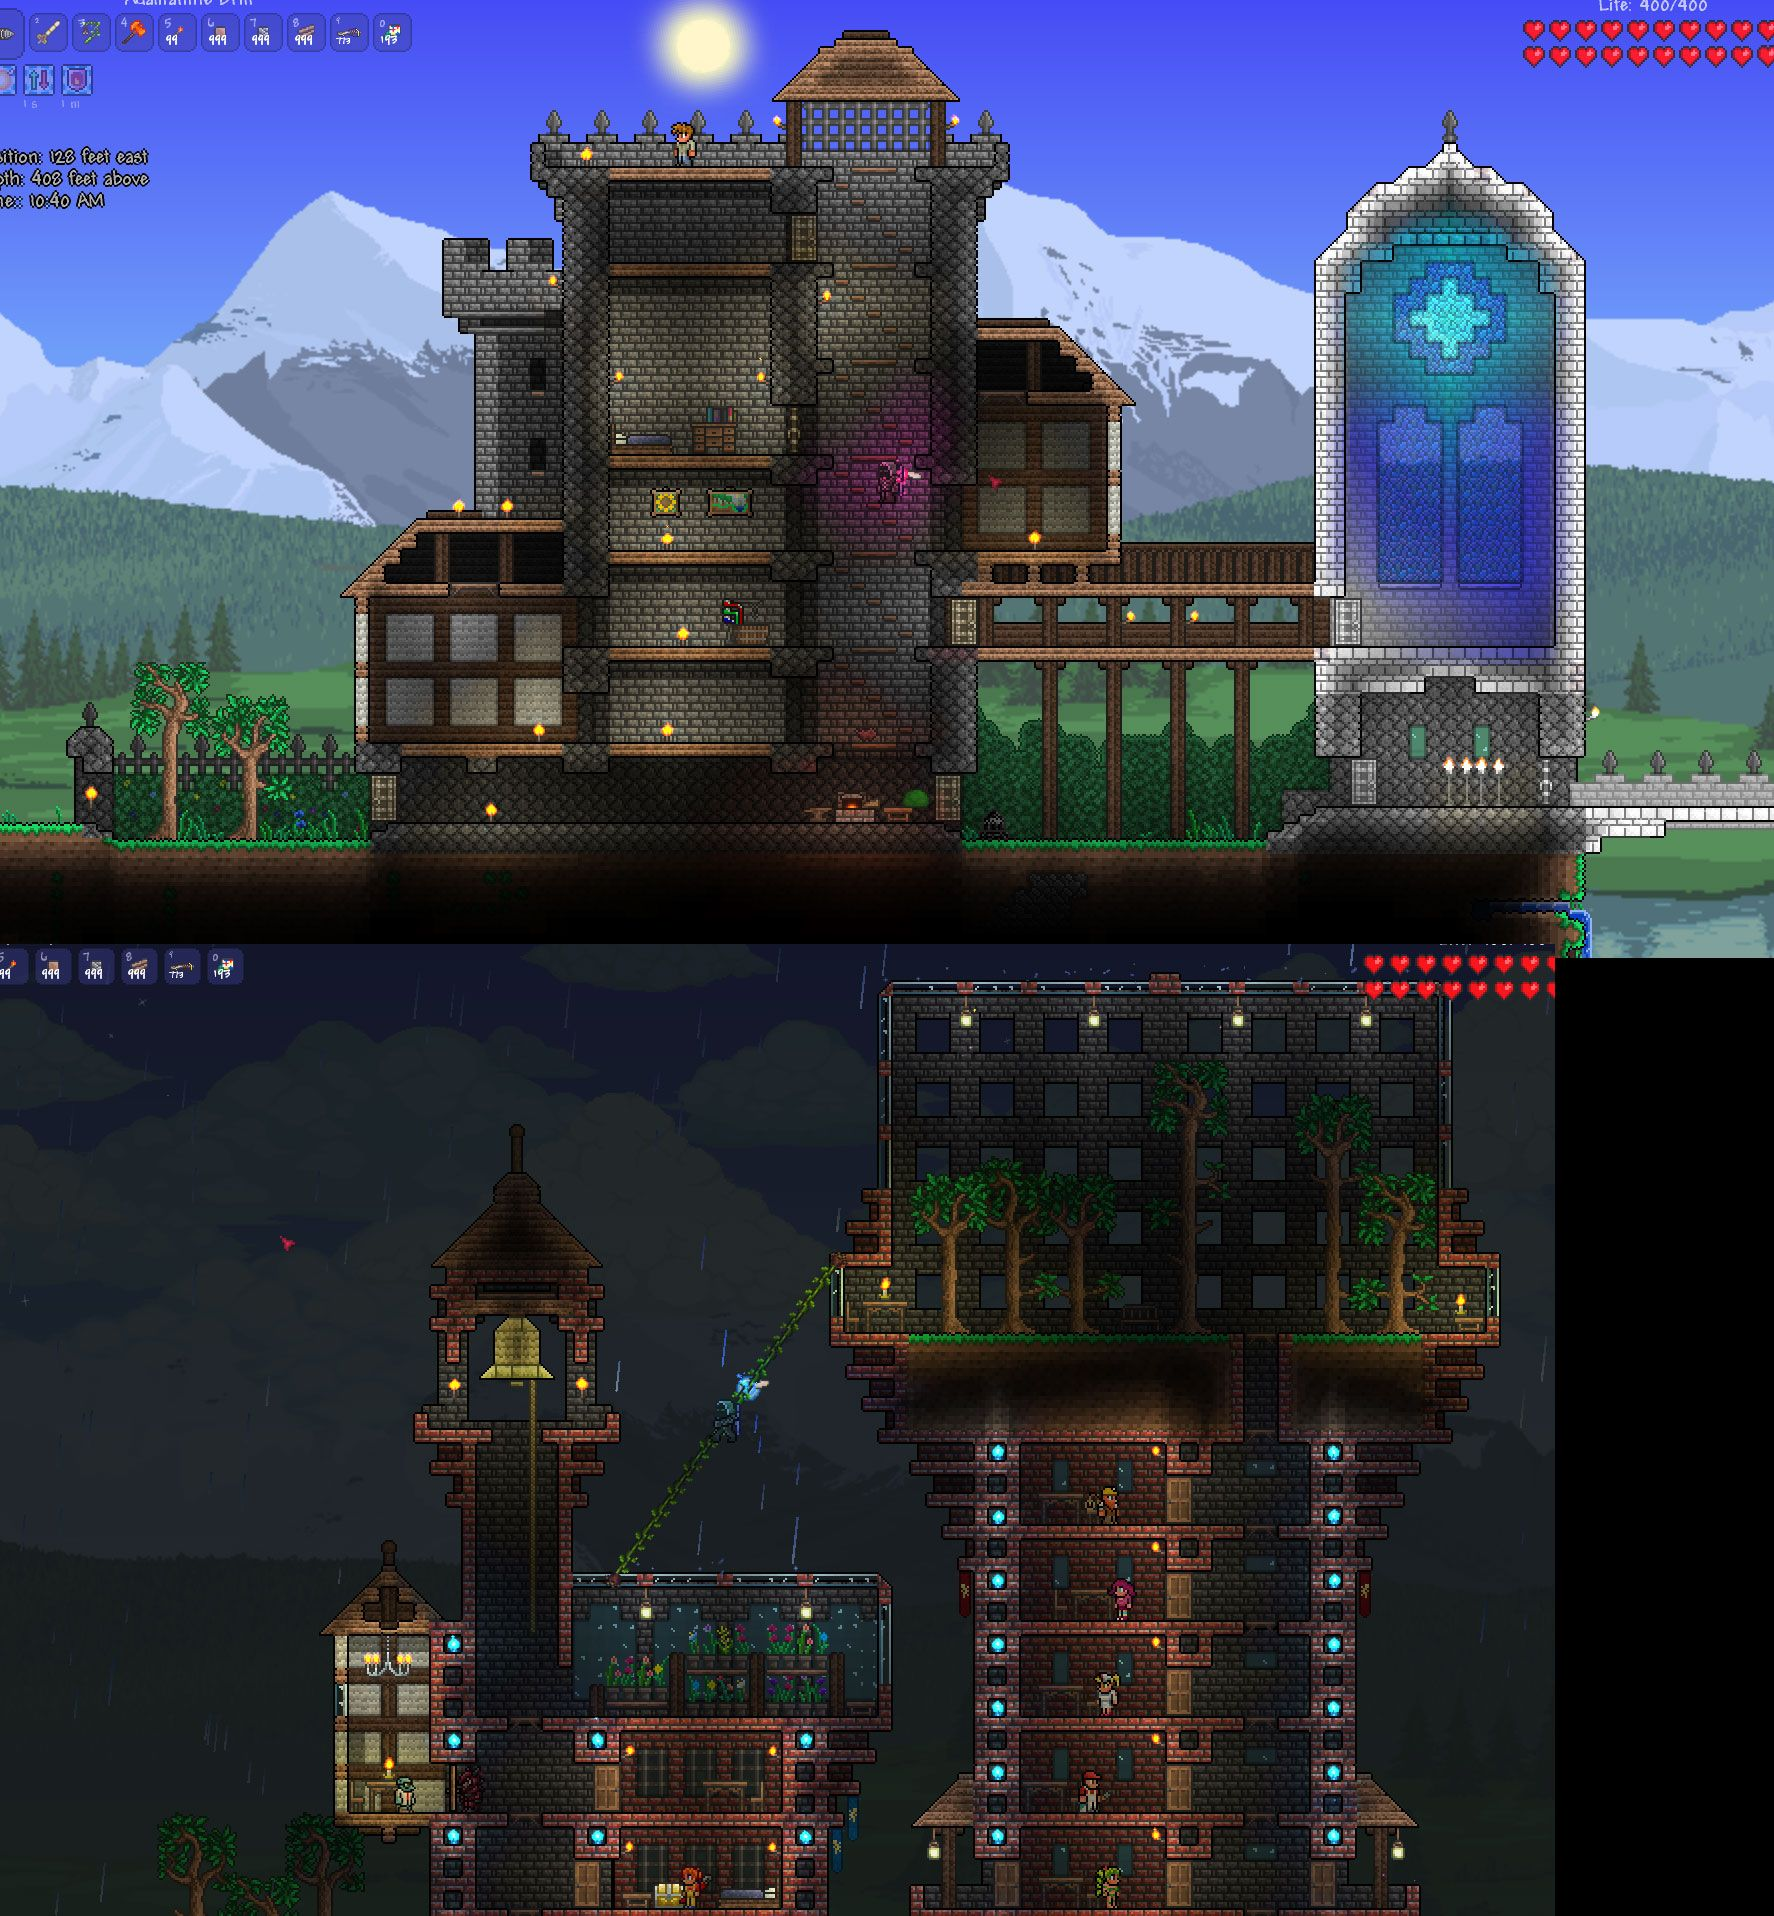 Terrarium Terraria House Design: Interesting Use Of A Walkway